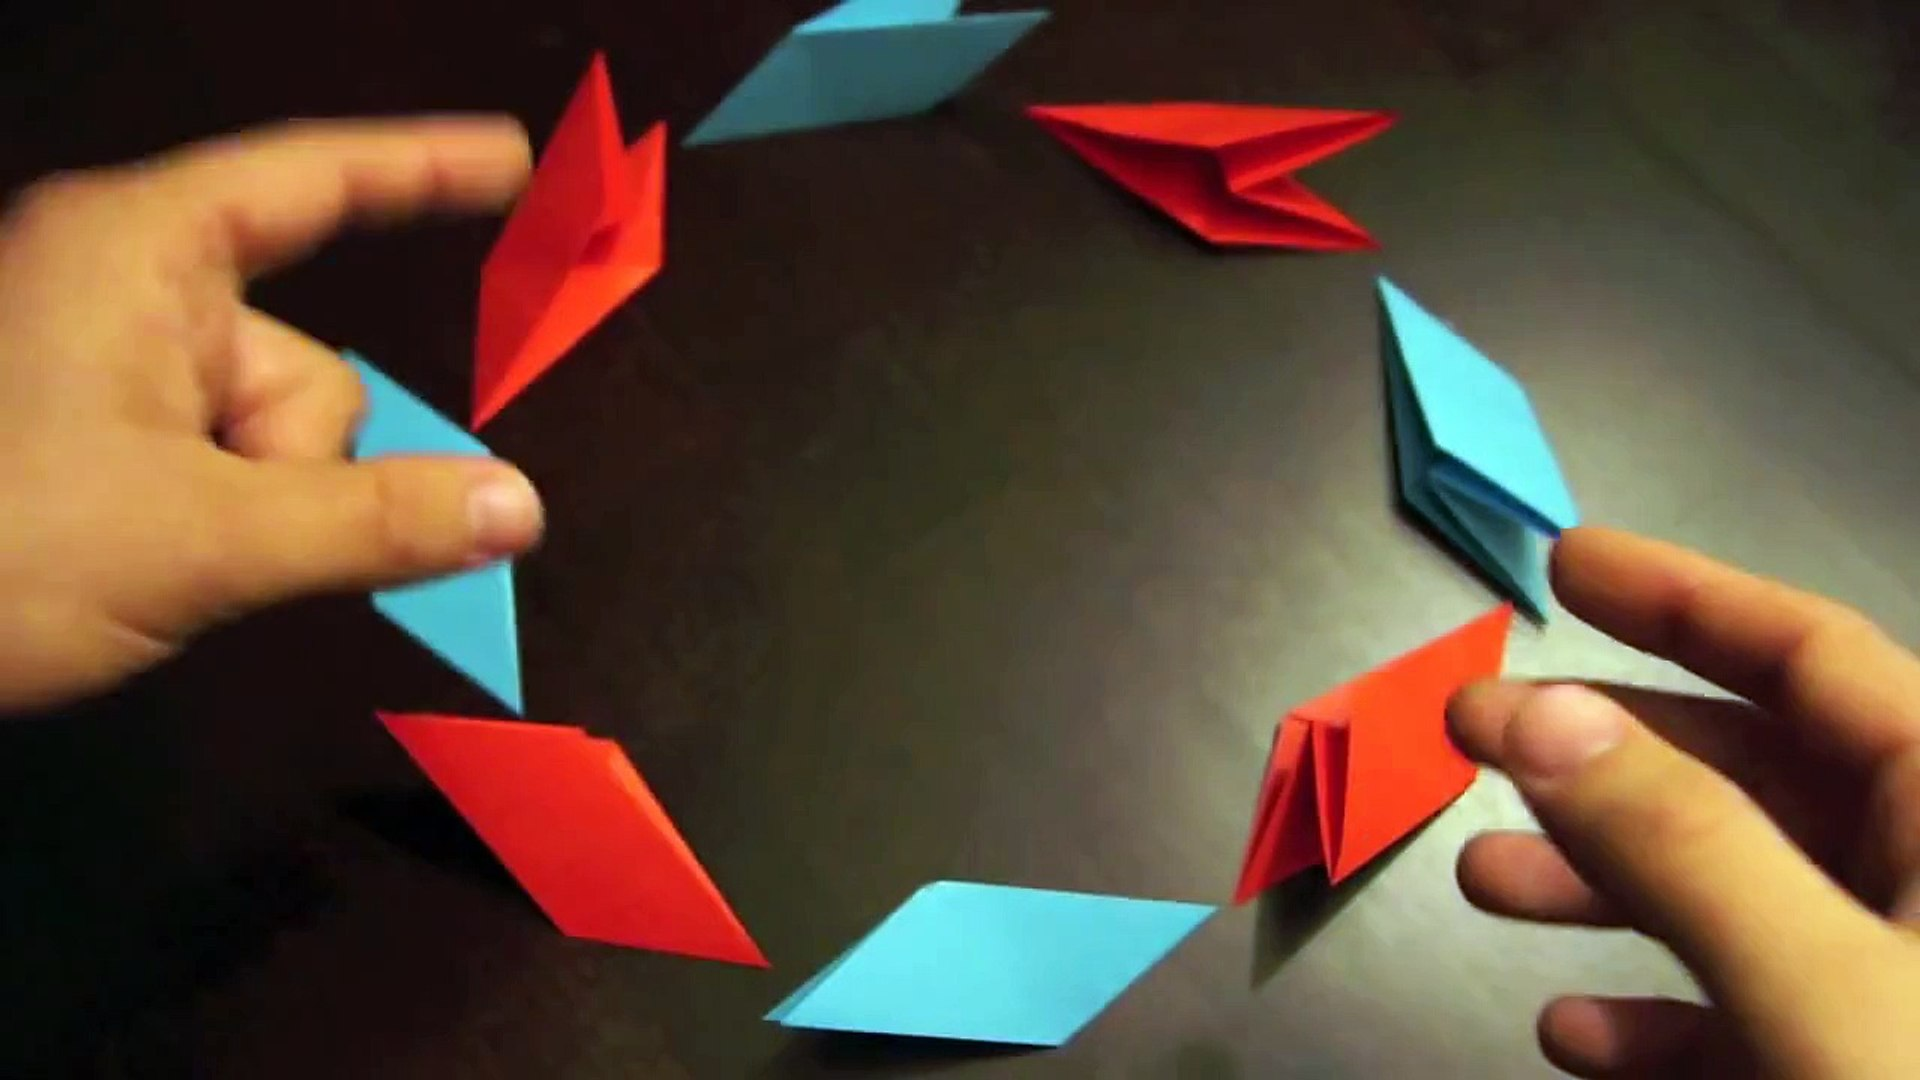 How To Make a Paper Transforming Ninja Star #2 - Origami - YouTube ... | 1080x1920